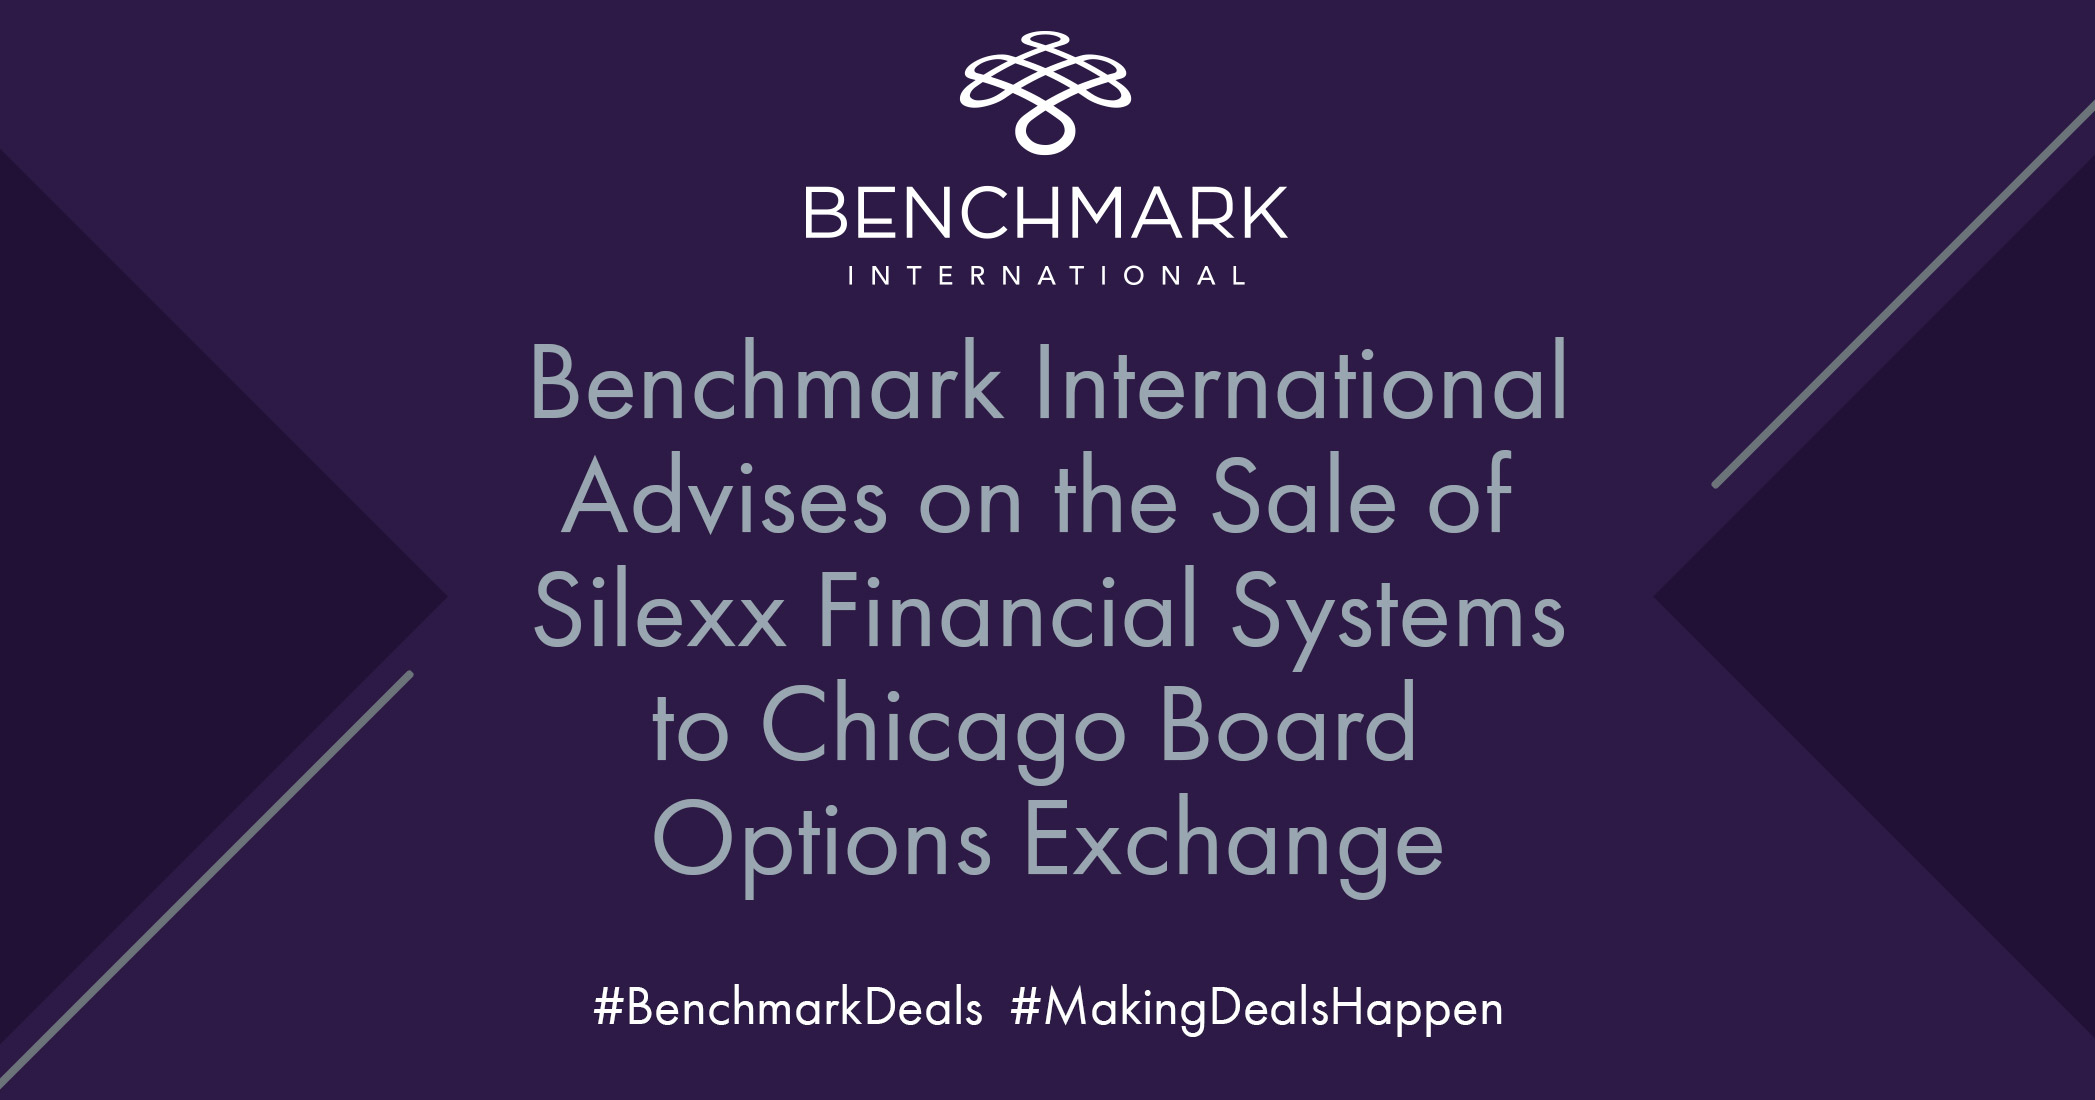 broker transaction between Silexx Financial Systems, LLC and Chicago Board Options Exchange